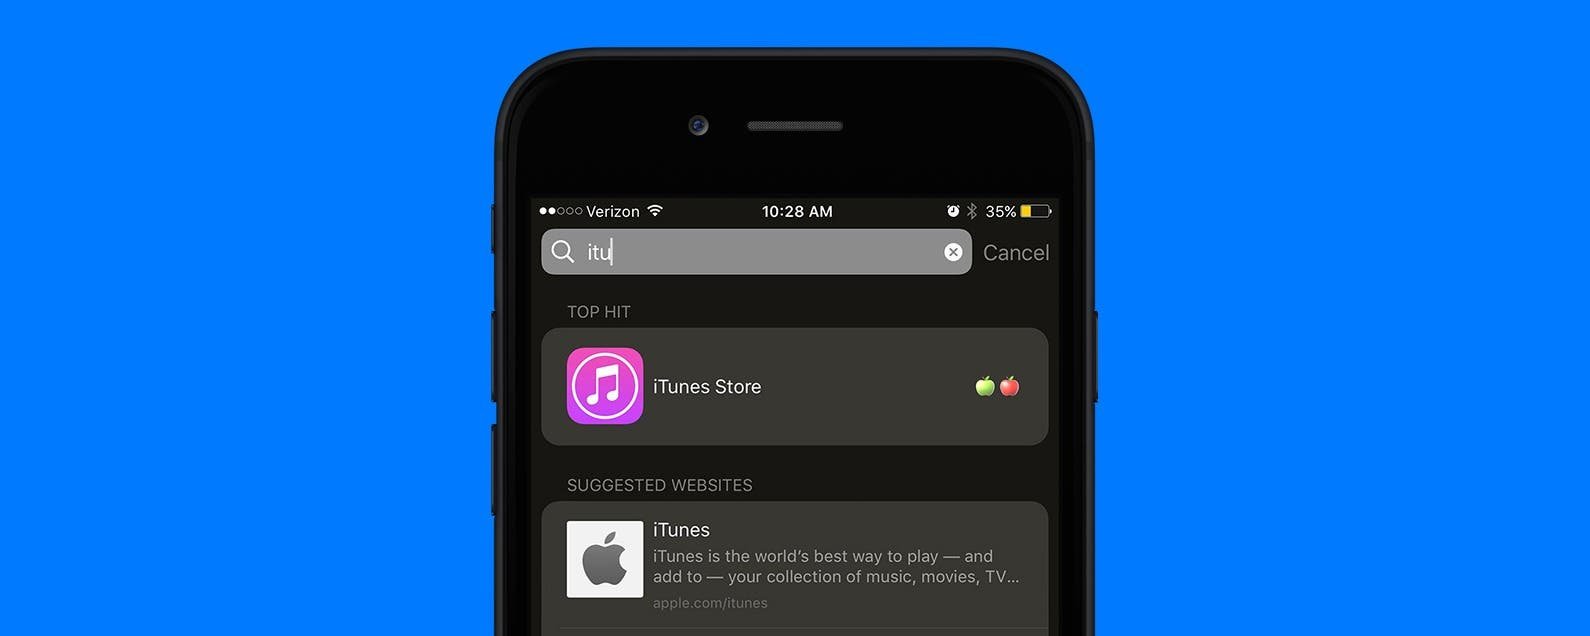 From itunes to how to get iphone apps iTunes